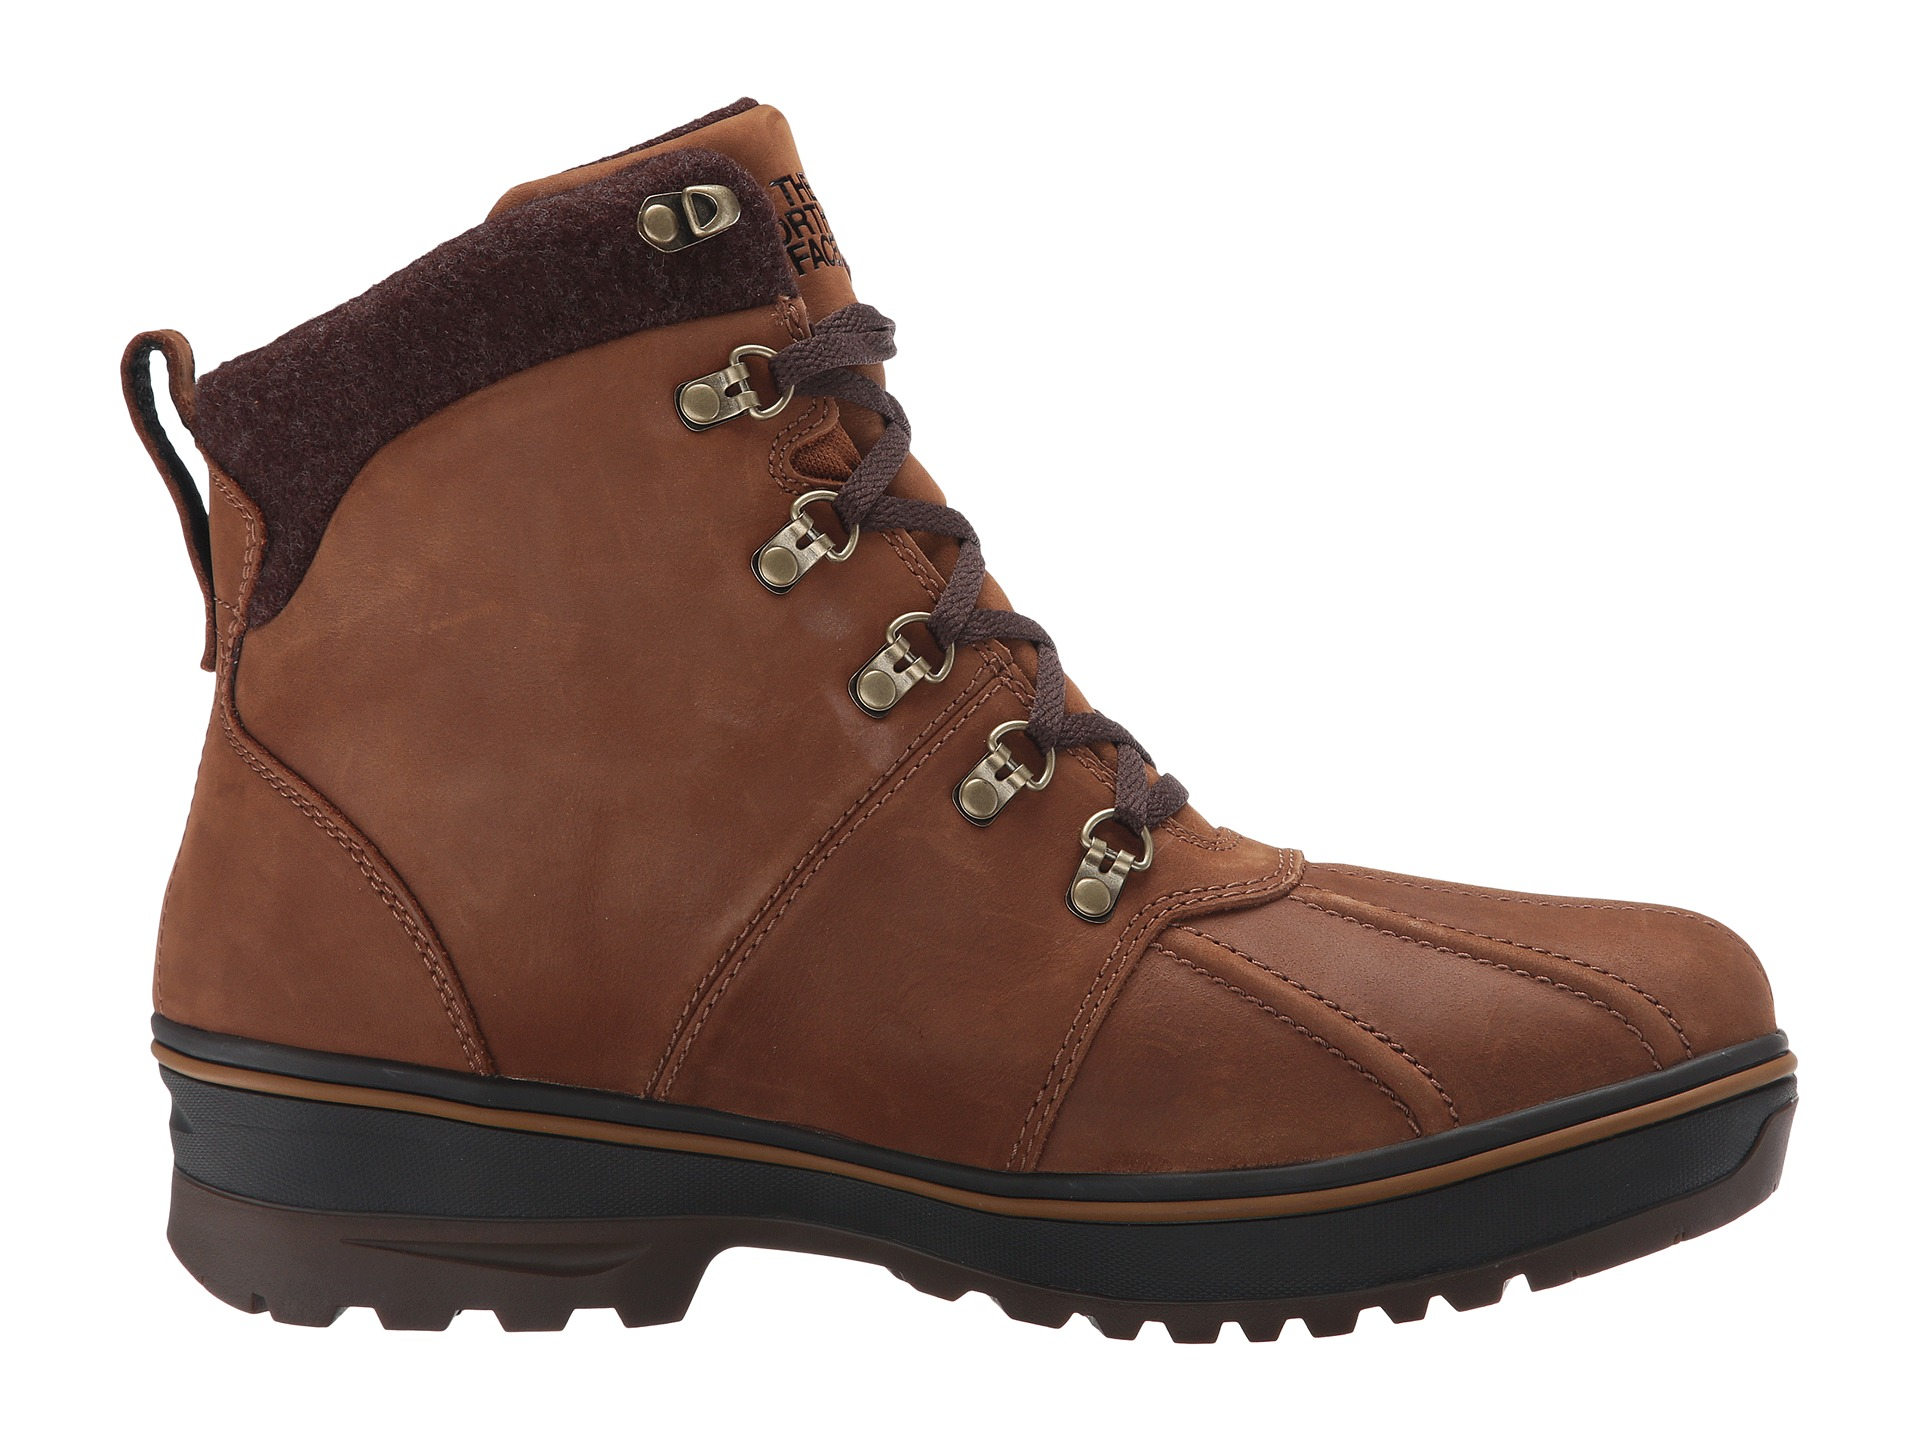 Free shipping BOTH ways on north face boys boots, from our vast selection of styles. Fast delivery, and 24/7/ real-person service with a smile. Click or call